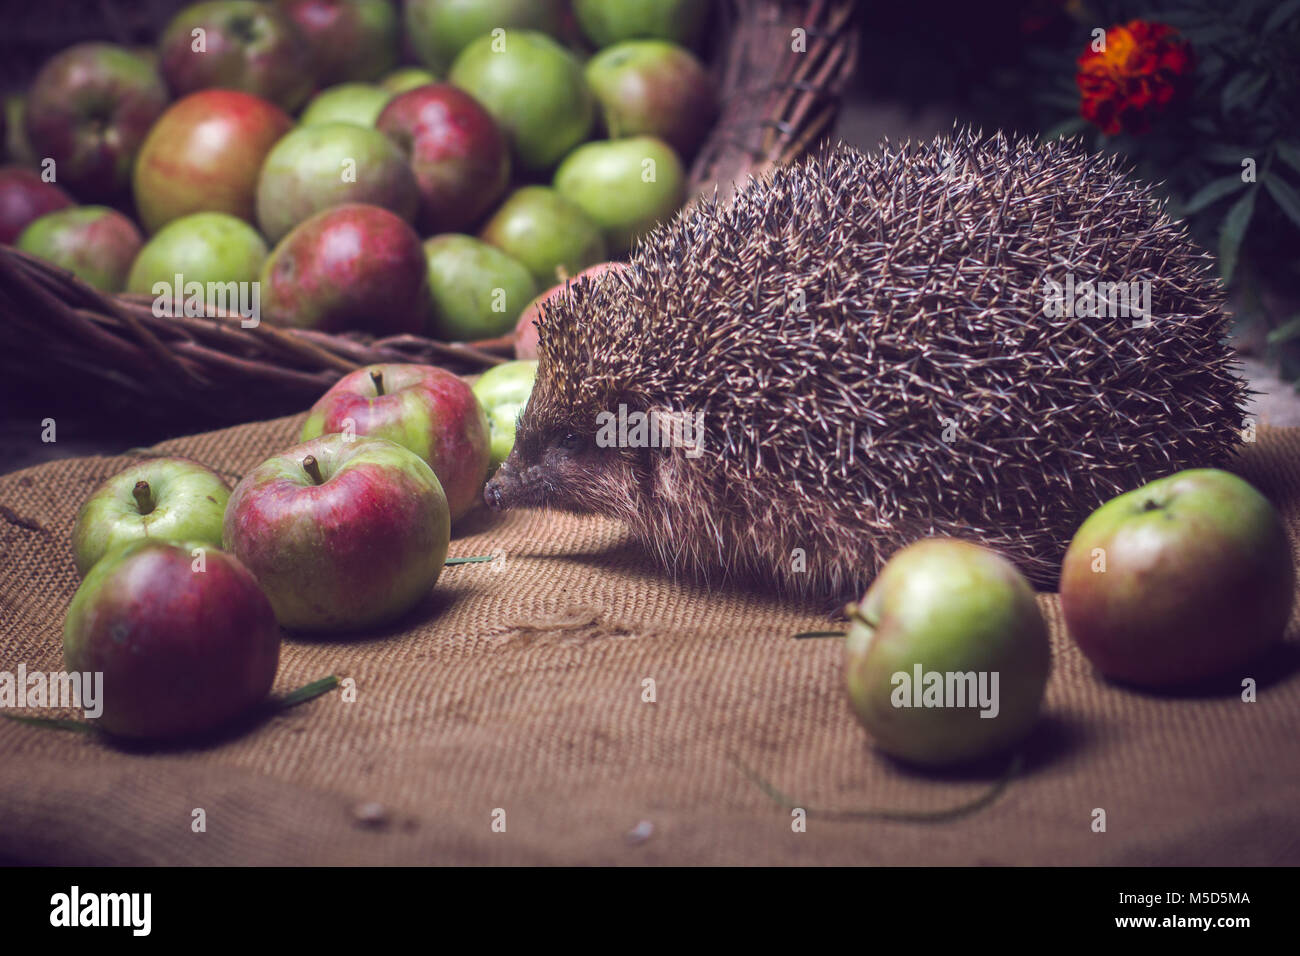 animals, barbed, beasts, cute animals, drinking milk, excellent, forest animals, fruits, good, hedgehog, milk, nice, - Stock Image